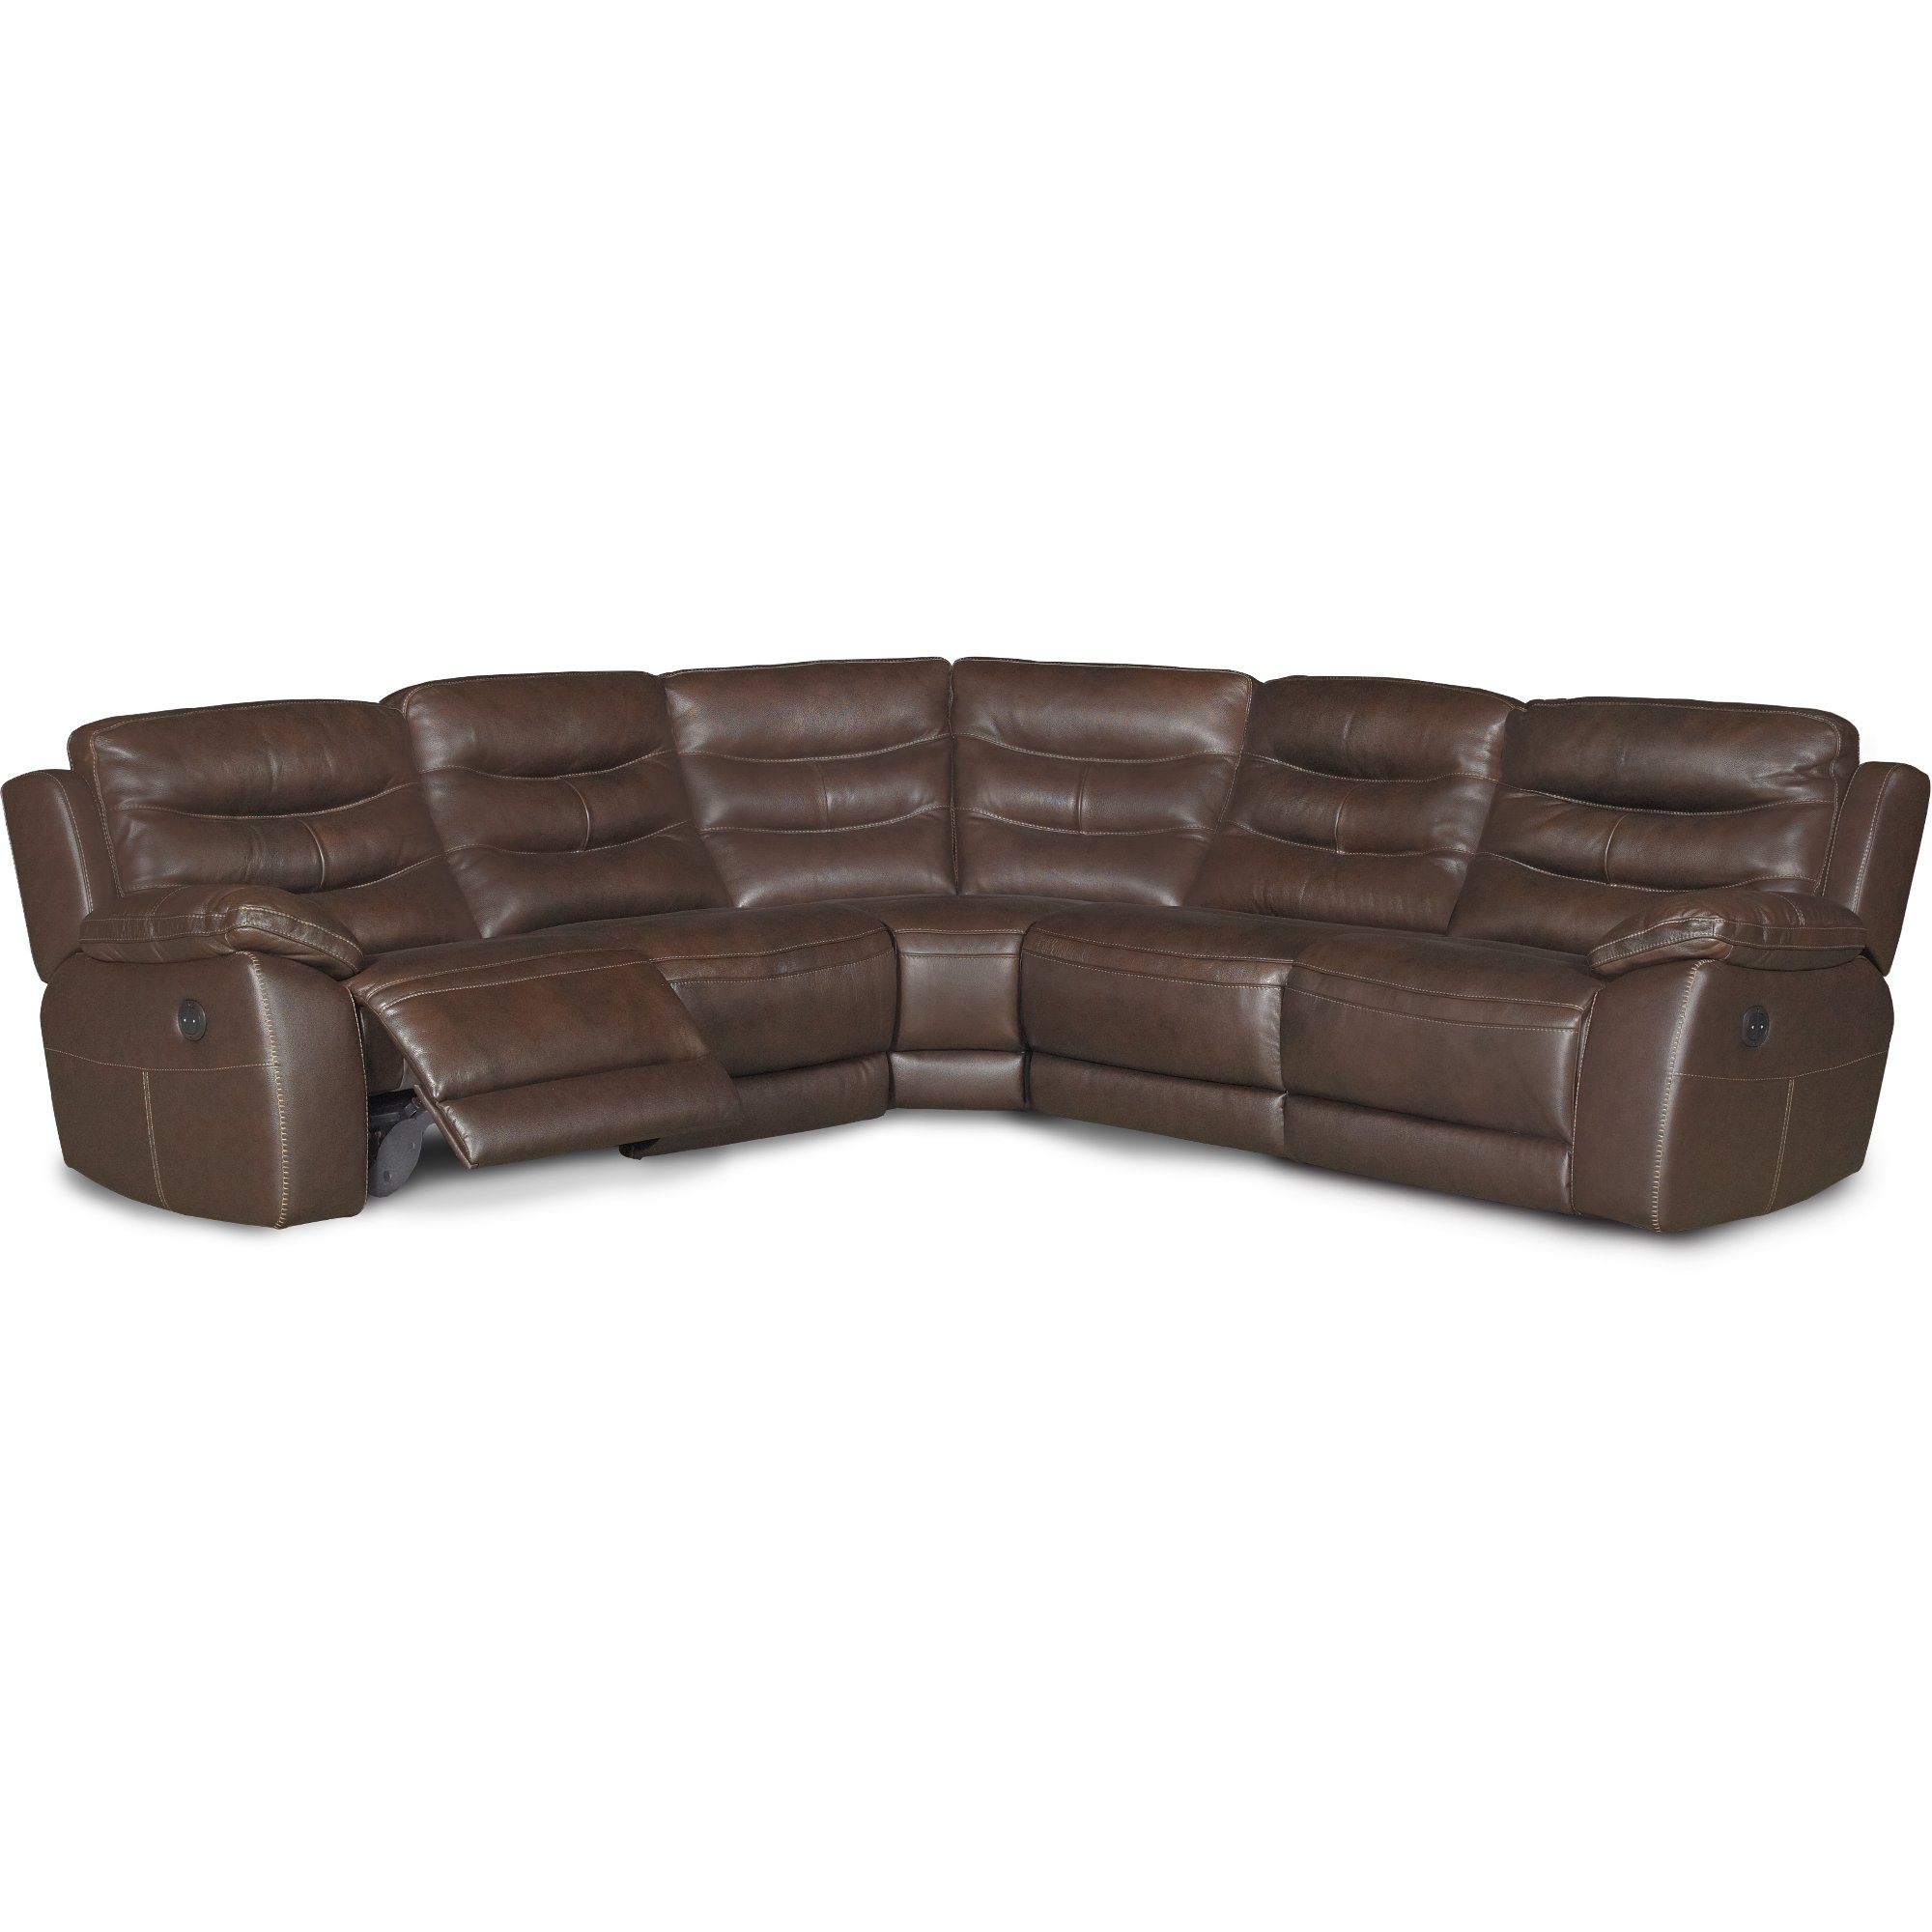 ... Brown Leather-Match 5-Piece Power Reclining Sectional - Shawn ...  sc 1 st  RC Willey & Reclining sectional u0026 leather reclining sectional | RC Willey ... islam-shia.org